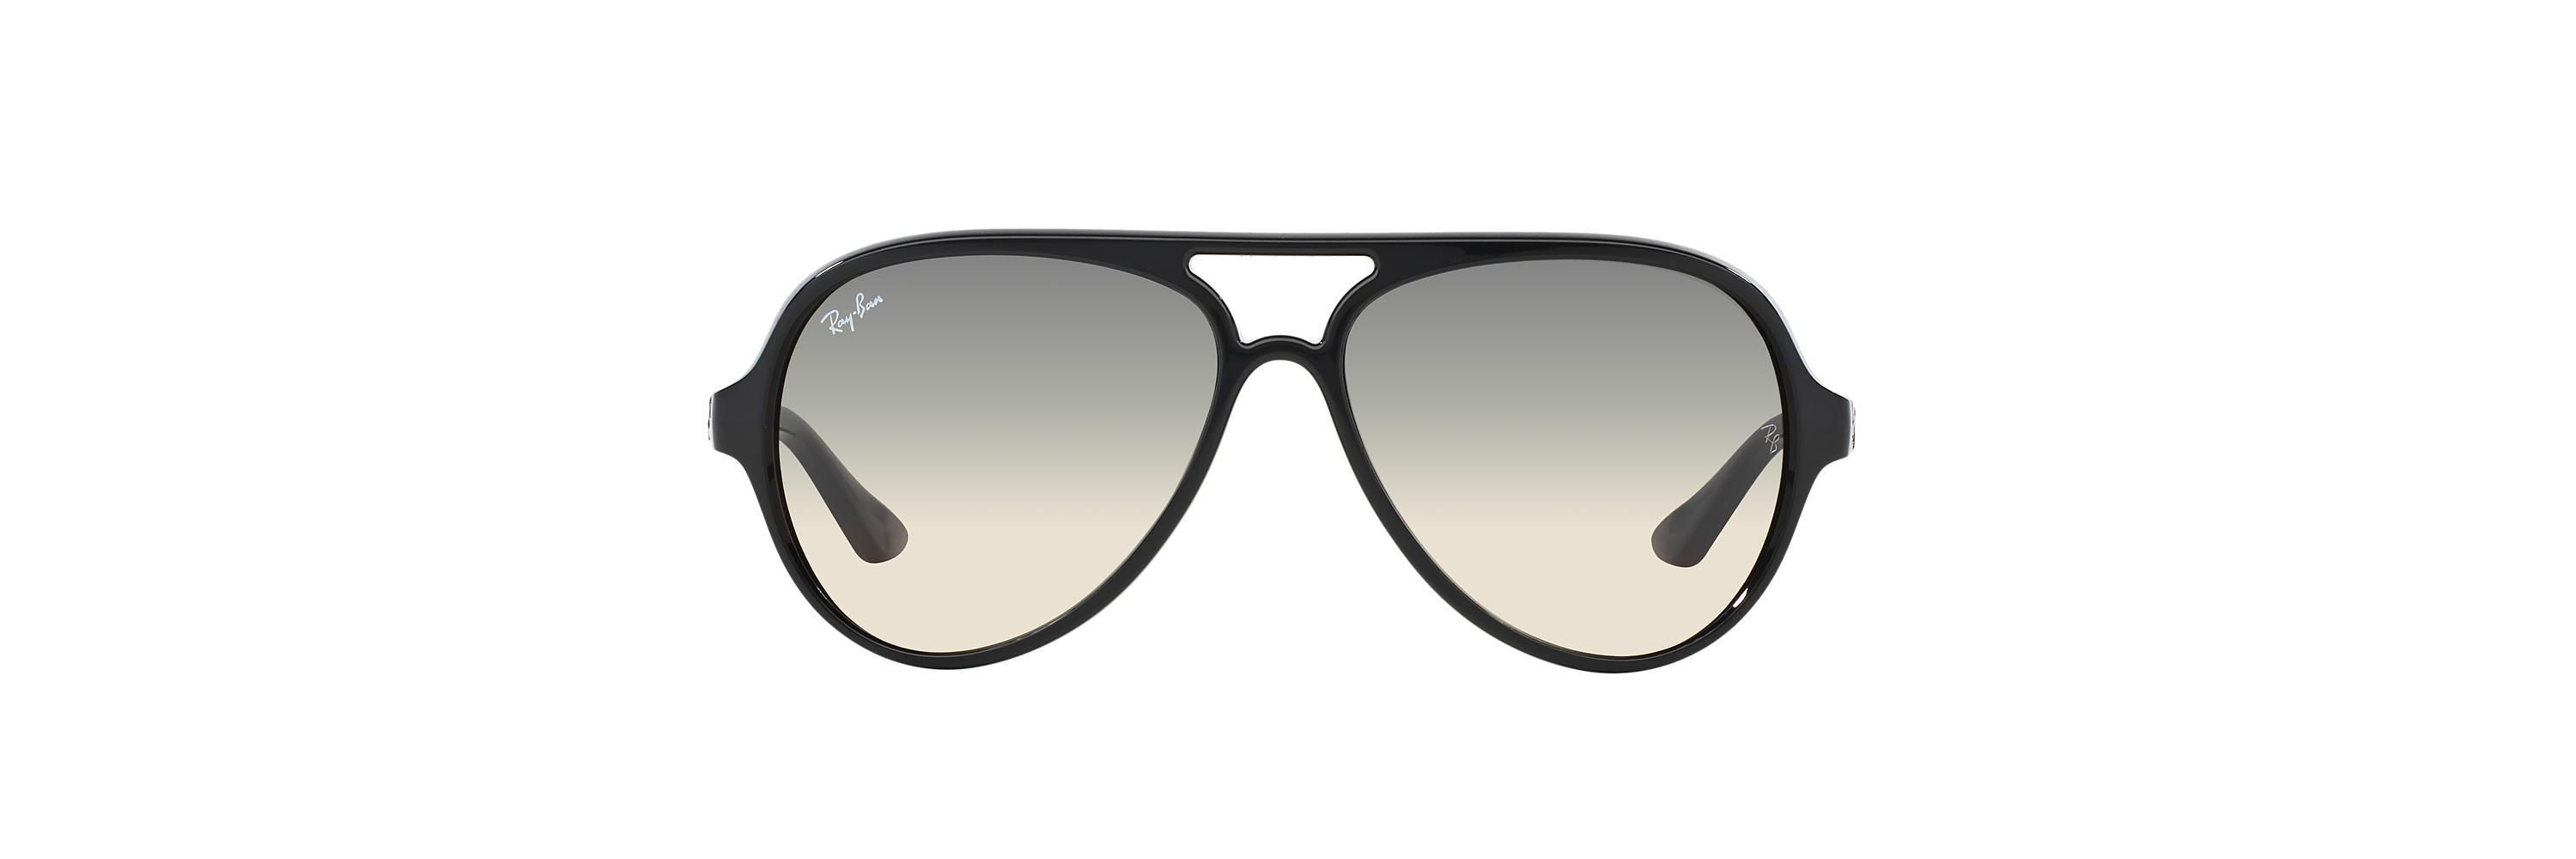 f57faac536 Lyst - Ray-Ban Rb4125 59 Cats 5000 Gradient Collection in Gray for Men